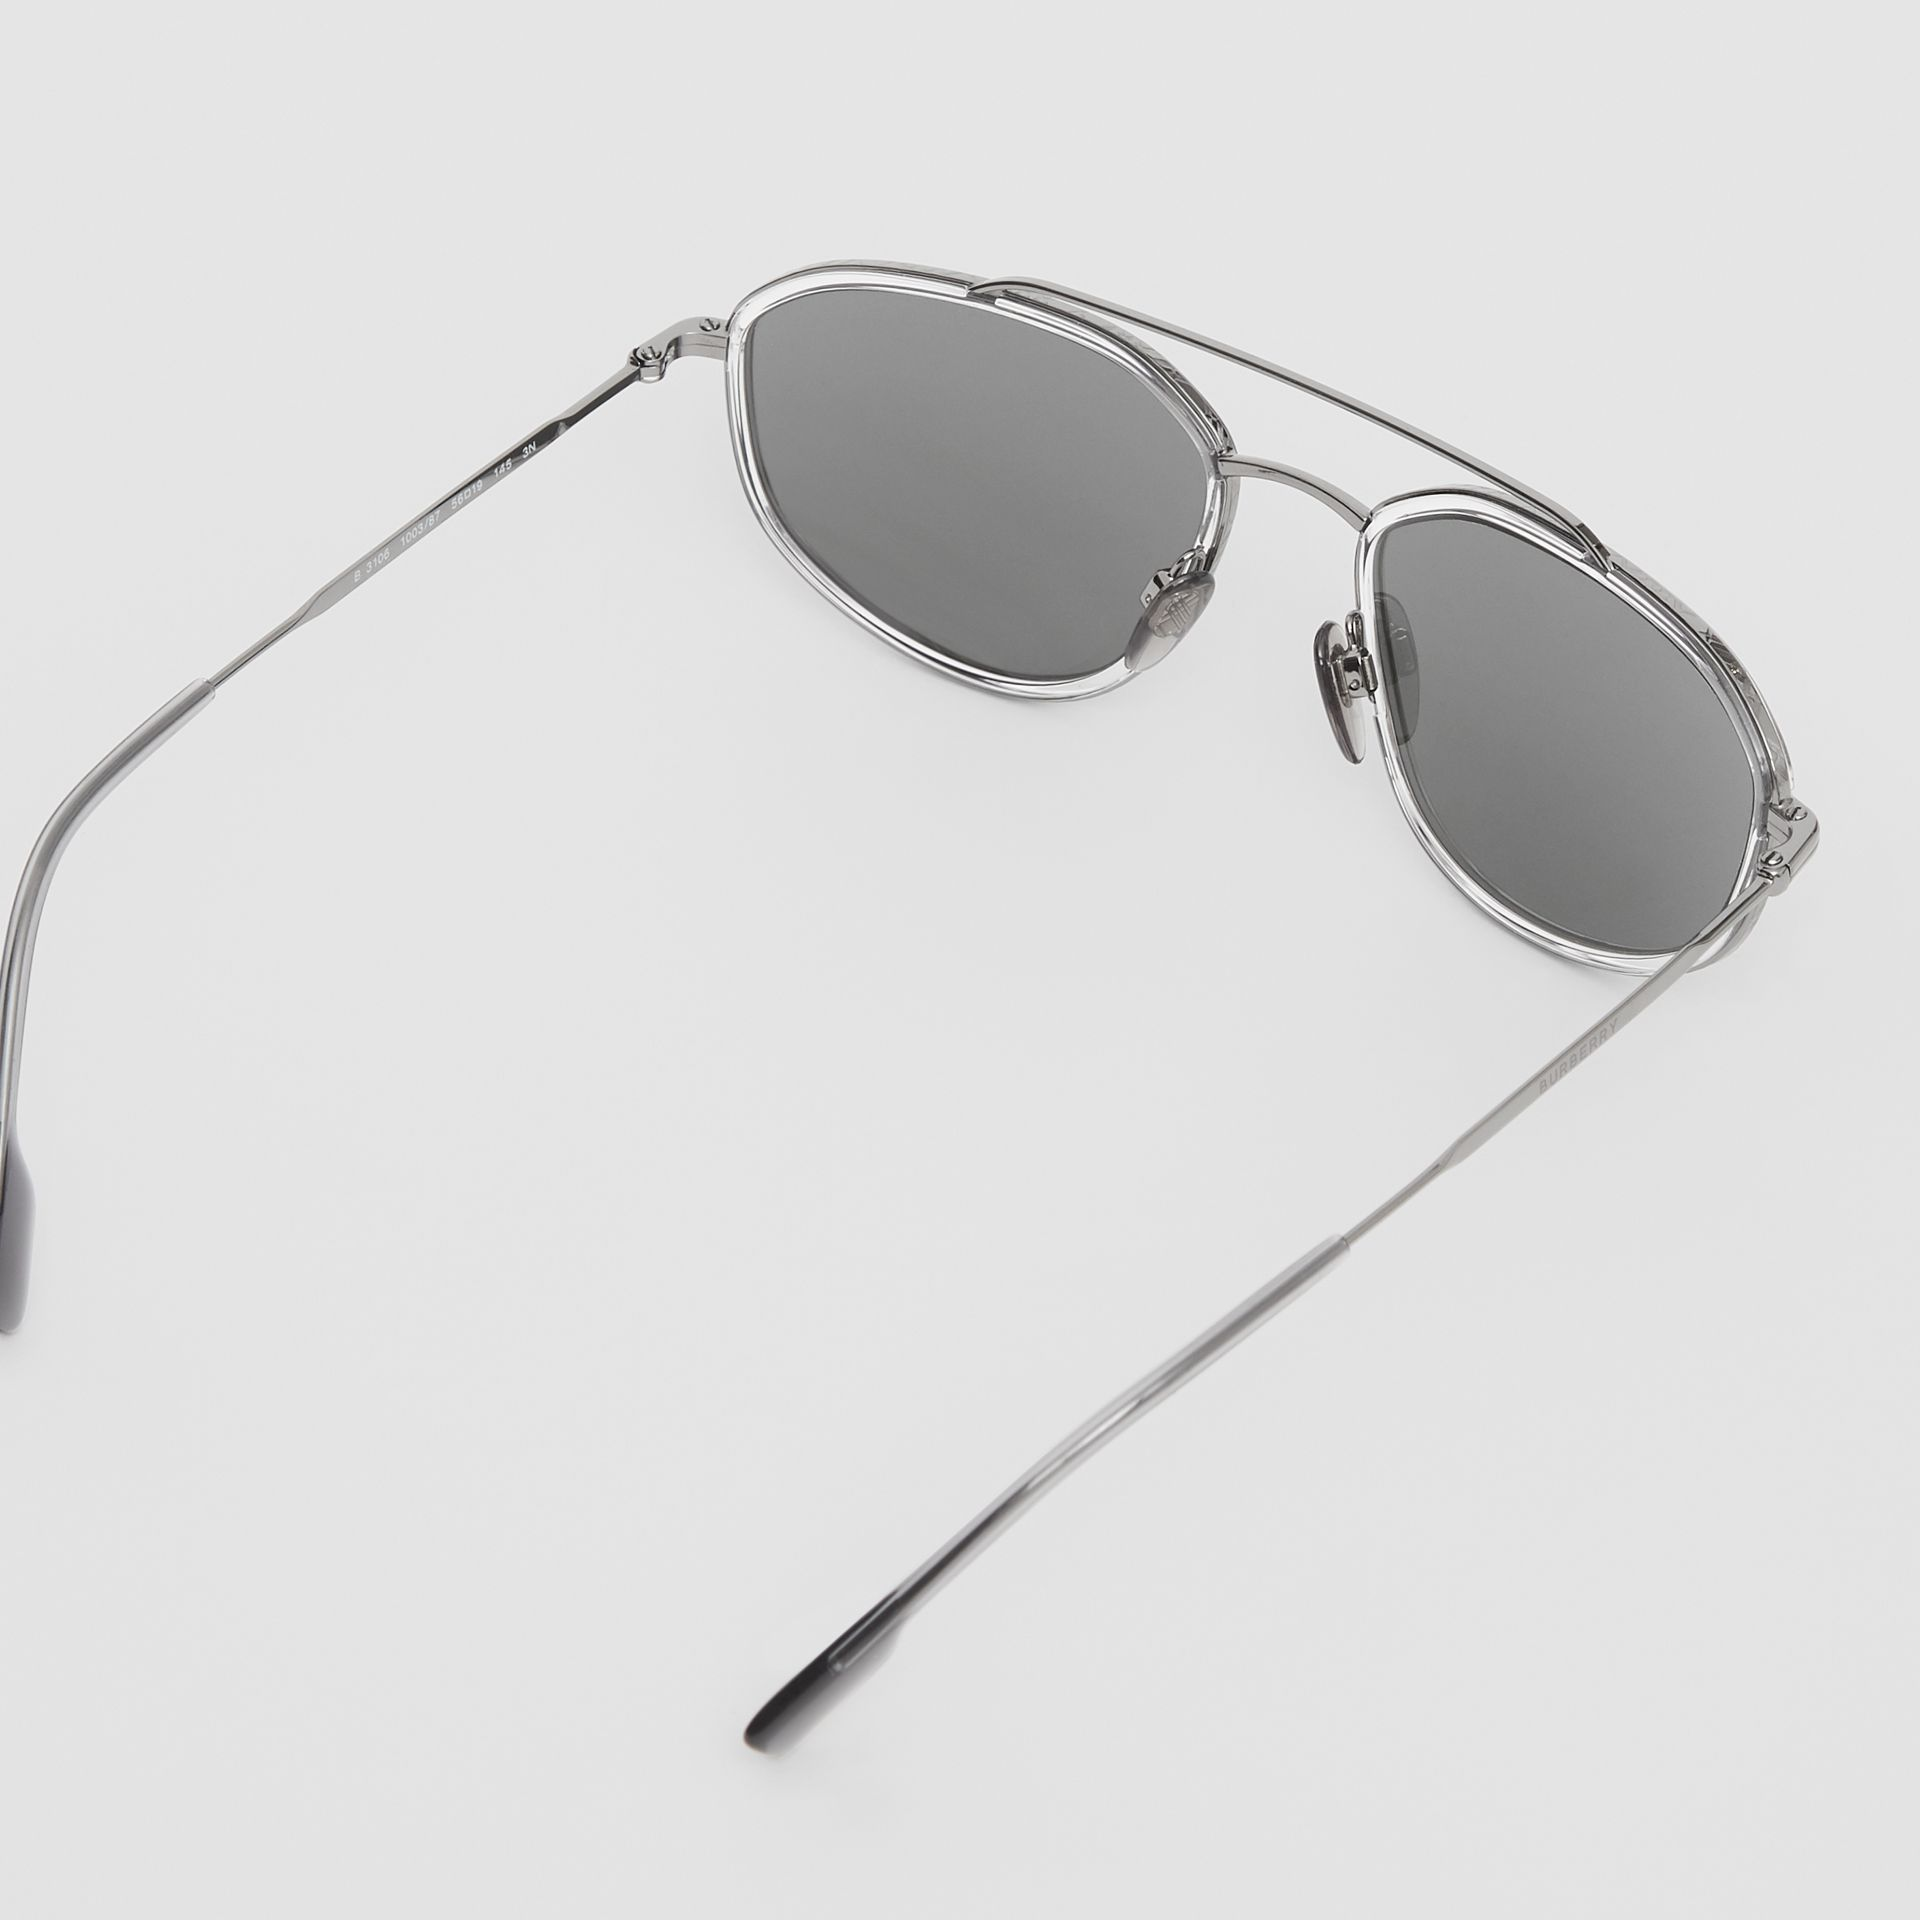 Geometric Navigator Sunglasses in Gunmetal Grey - Men | Burberry United Kingdom - gallery image 4